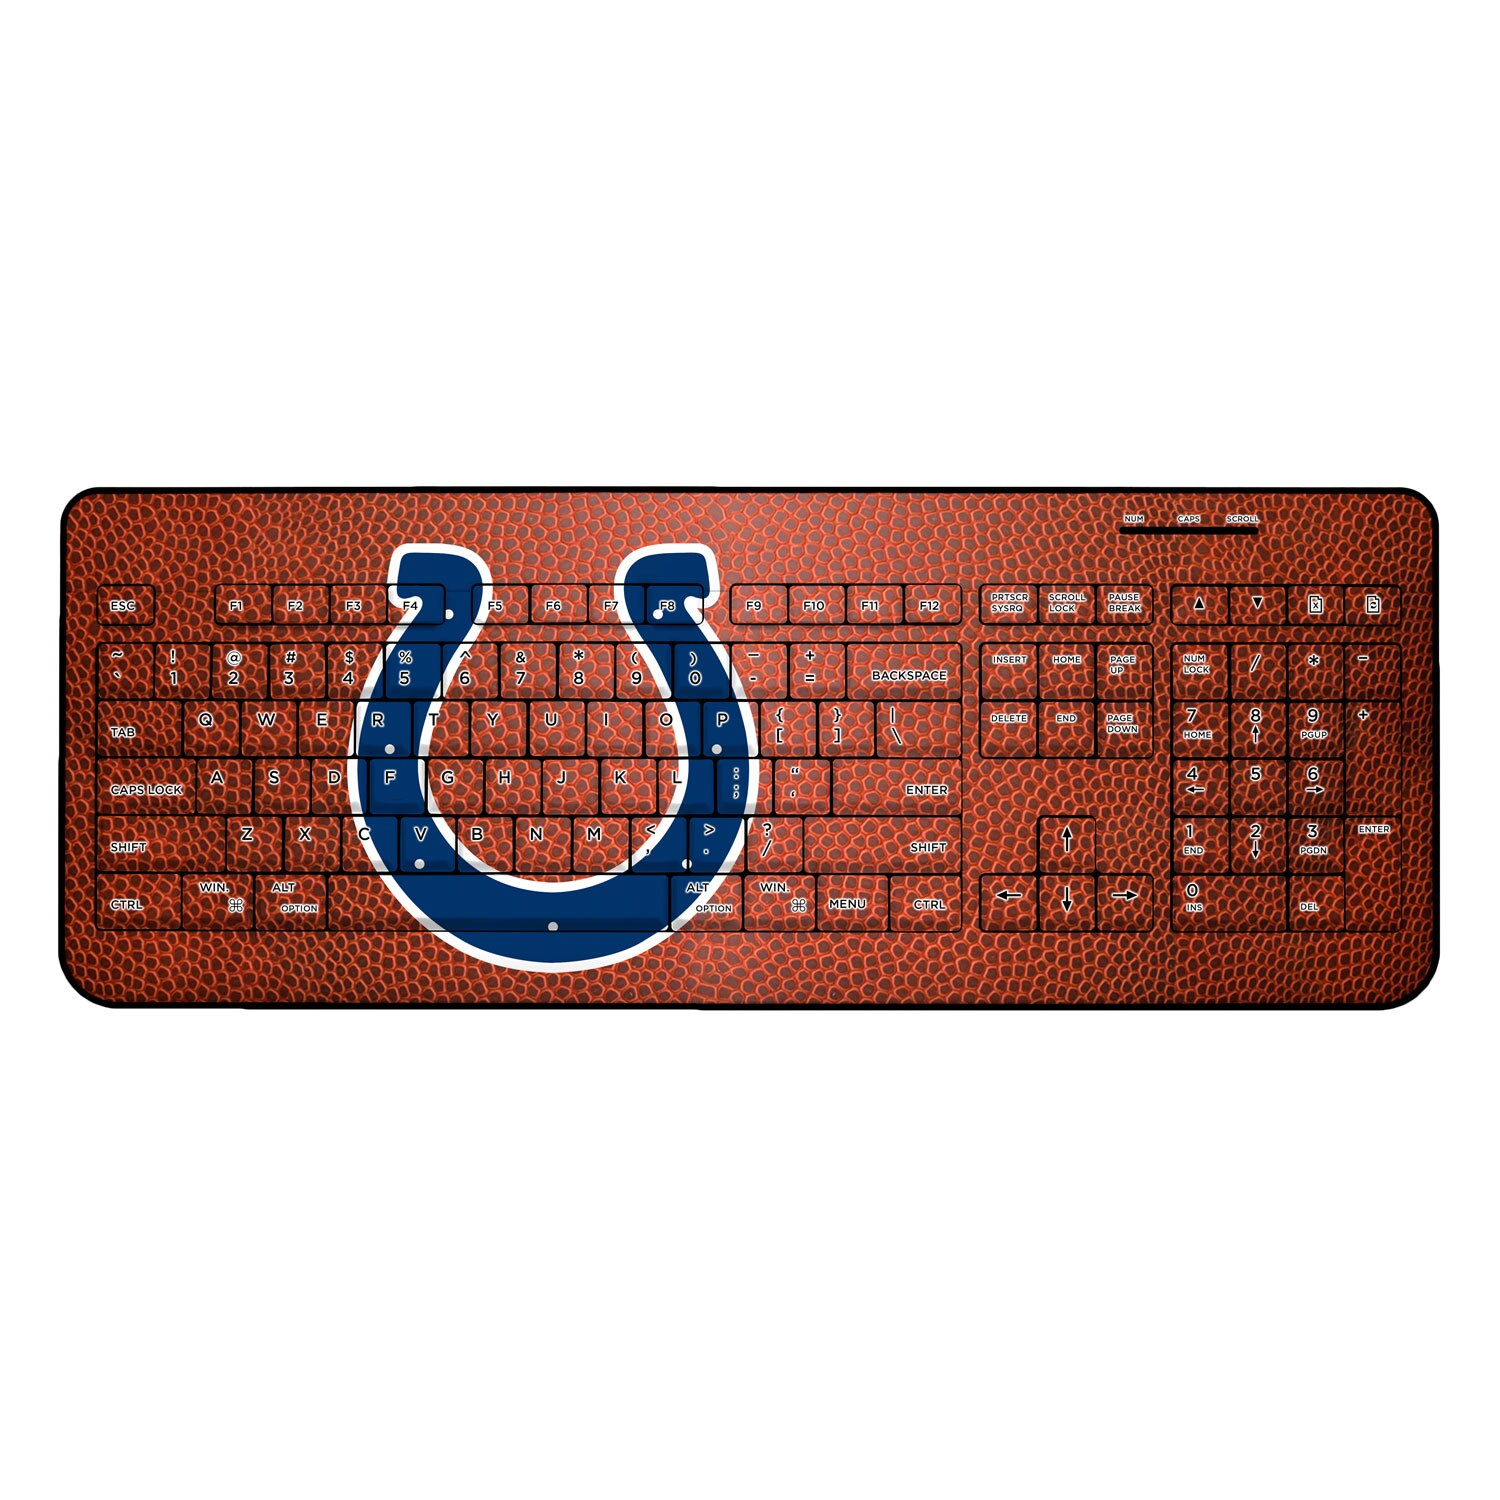 Indianapolis Colts Football Design Wireless Keyboard